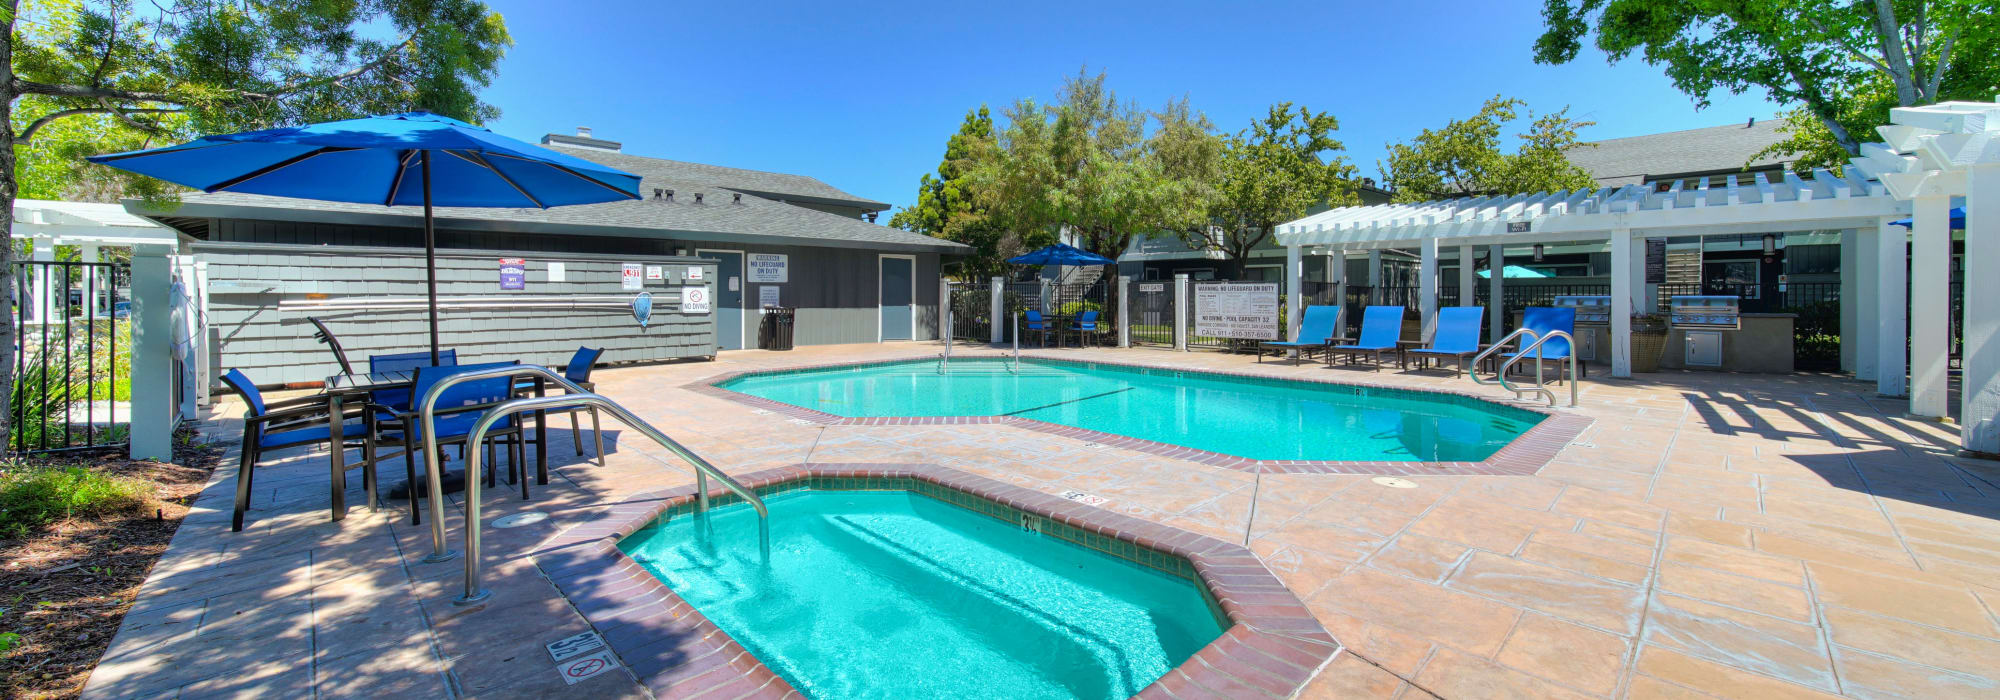 Pet friendly living at Parkside Commons Apartments in San Leandro, California